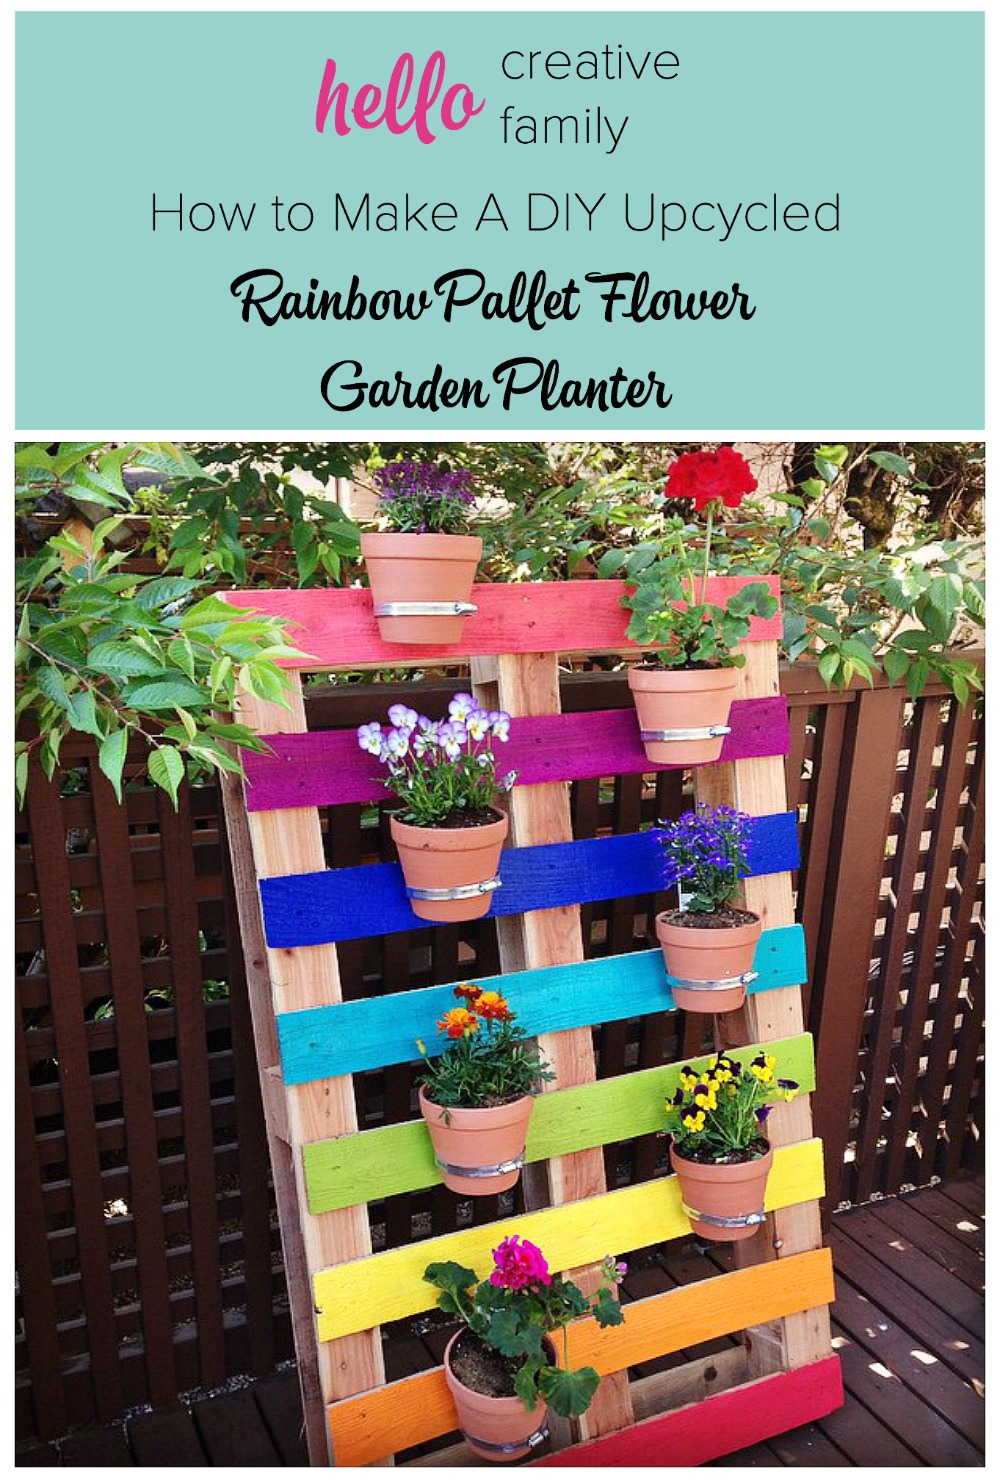 Creative Garden Ideas For Kids how to make a diy upcycled rainbow pallet flower garden planter